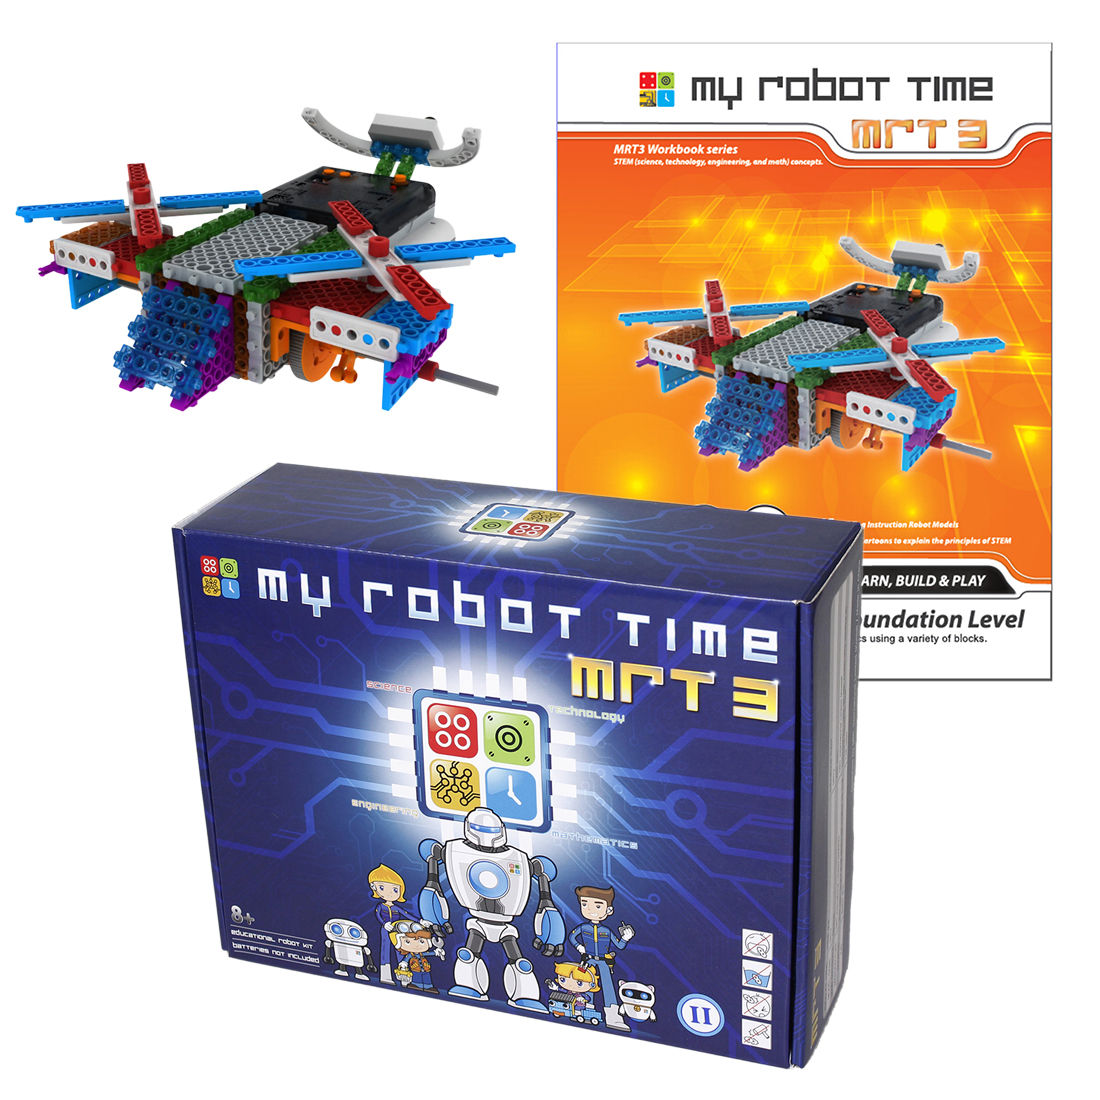 My Robot Time Multi-mode DIY RC Robots Building Block Kit Assembly Educational Robot Gift Toy for 7-12 Years Old (MRT 3-1/2/3/4)